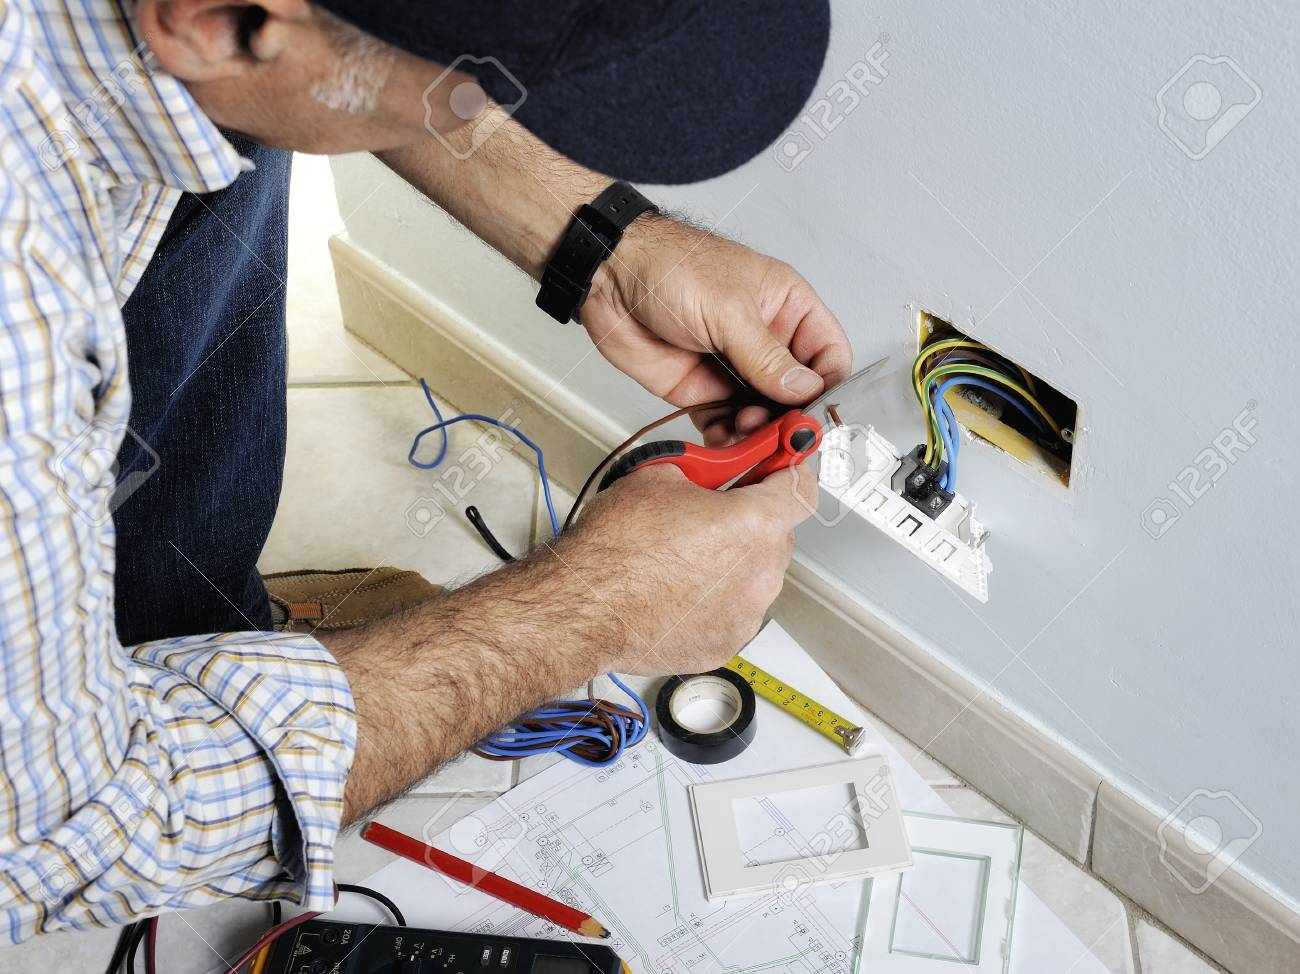 Electrician Stripping The Cable To Connect Switches And Sockets Residential Electric Wiring Of A Electrical Installation Stock Photo